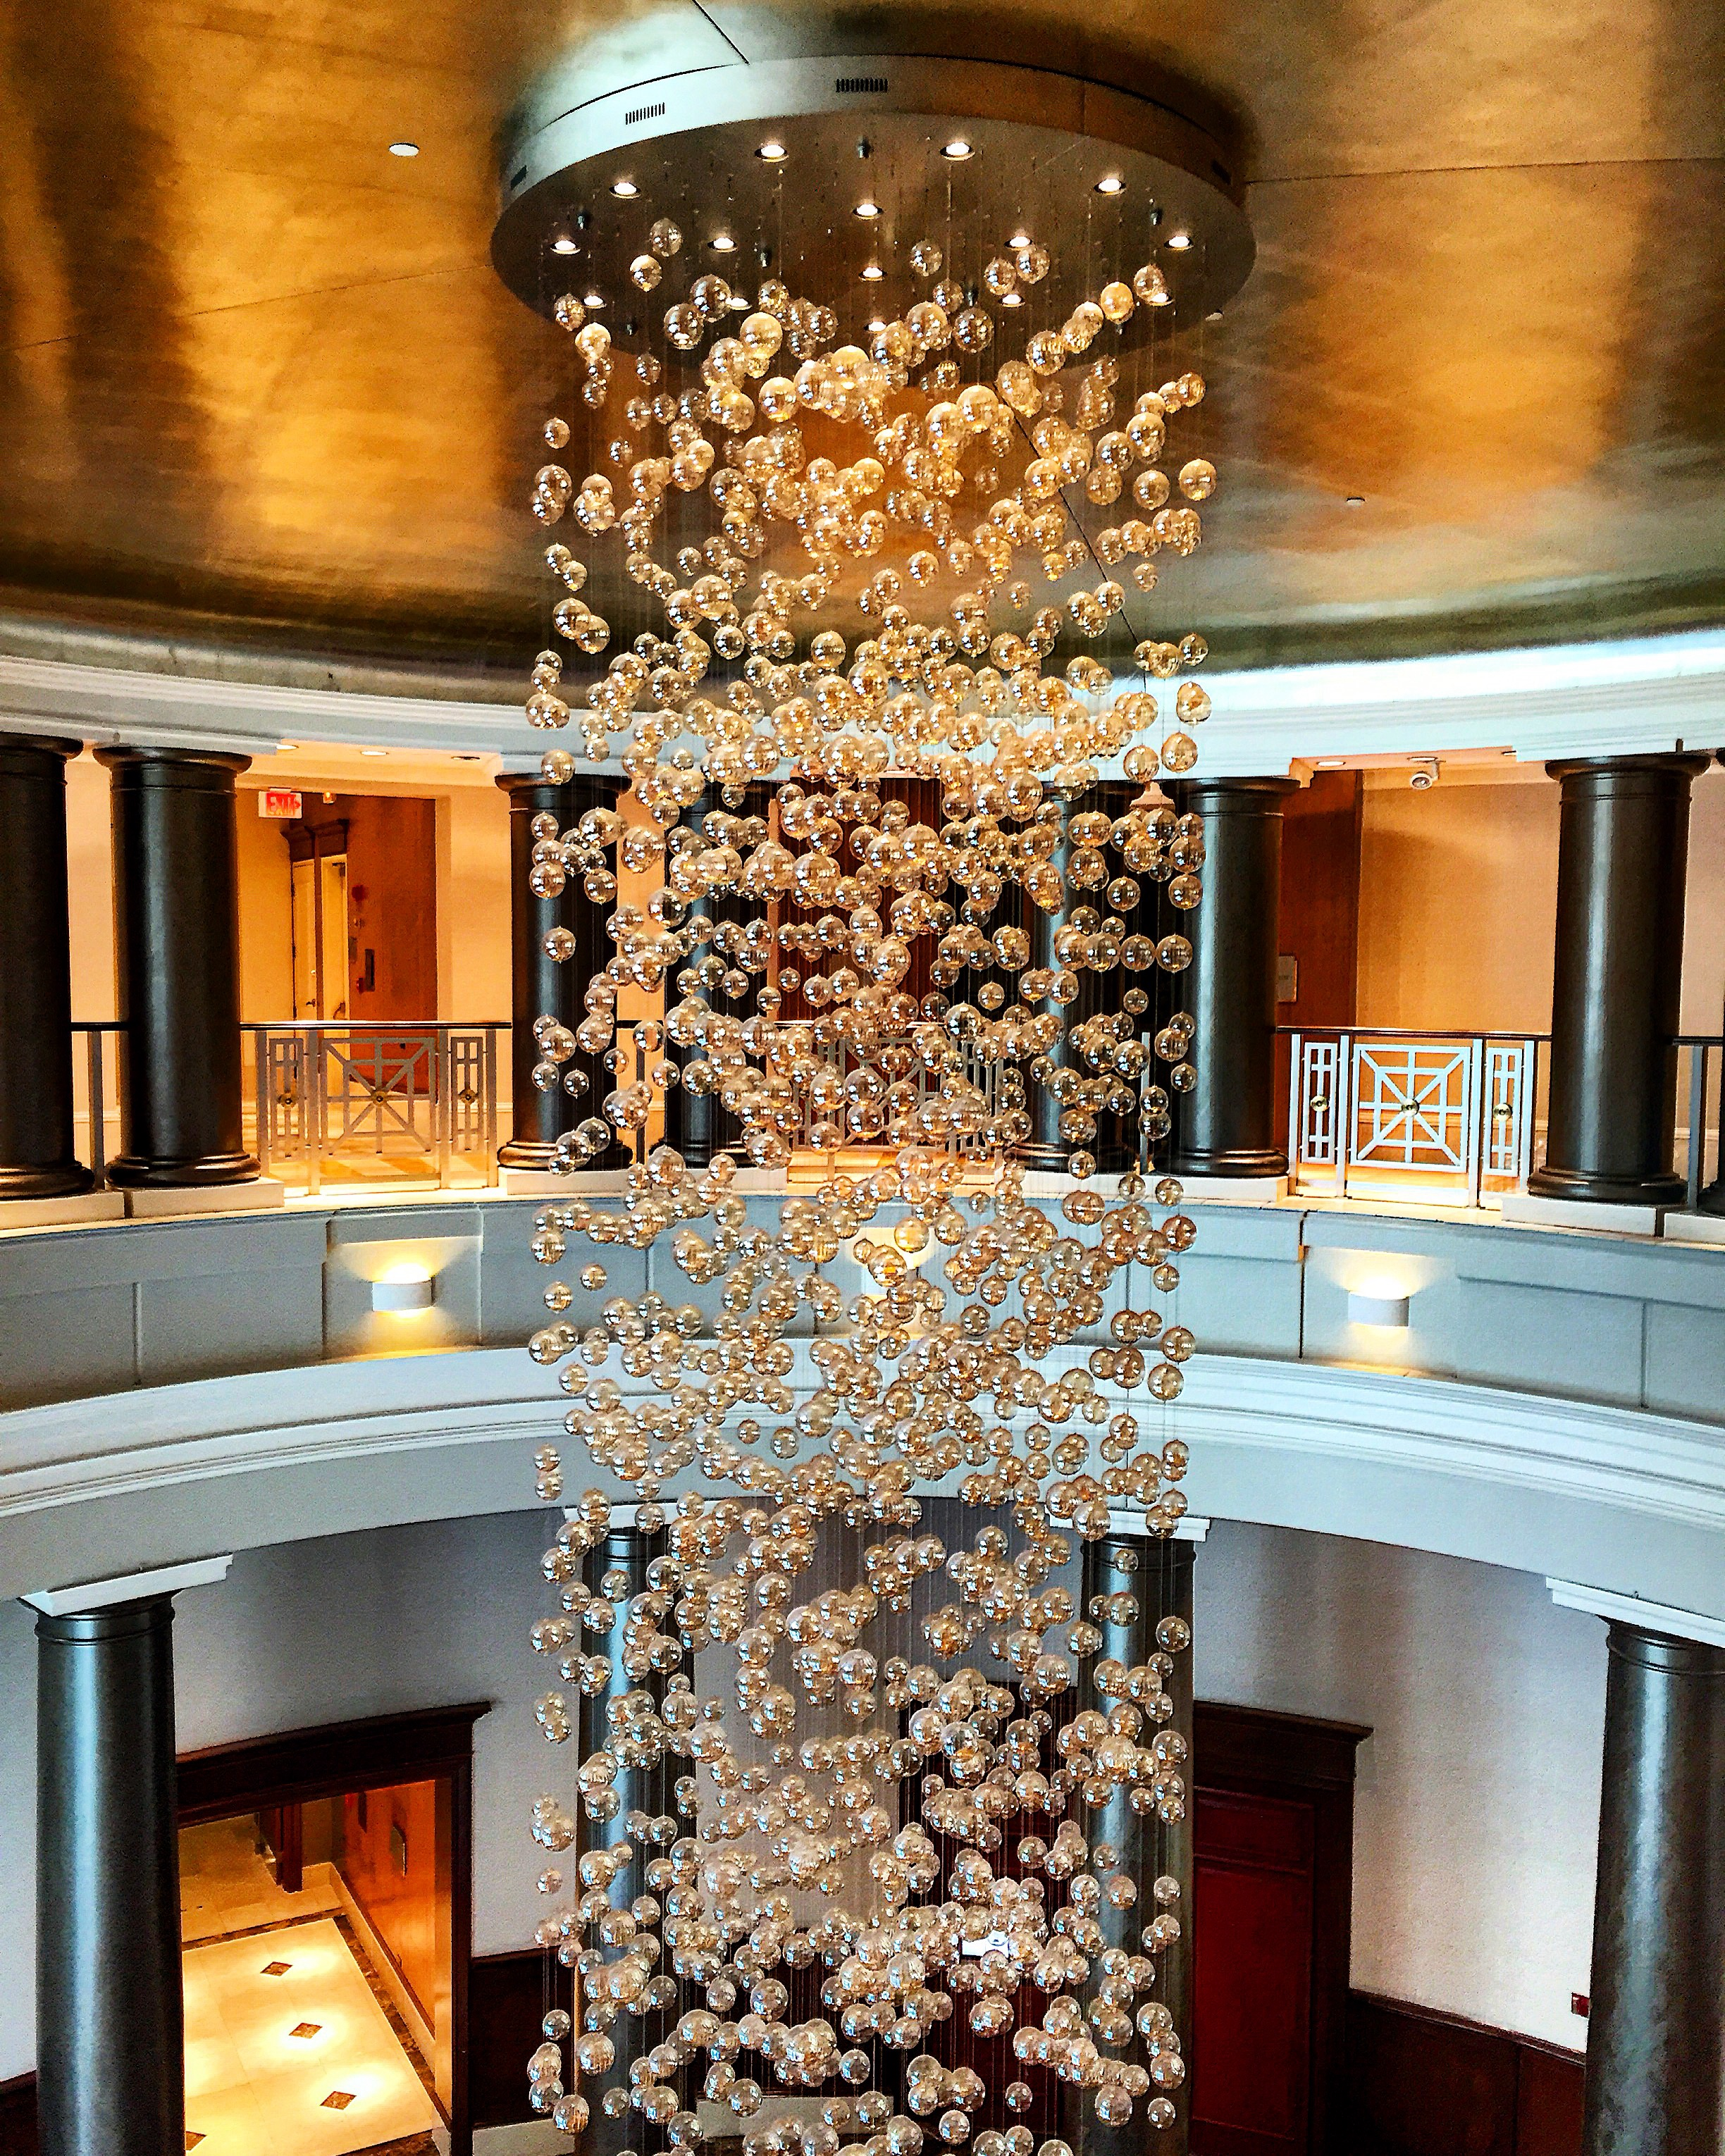 Chandelier at the Omni Hotel - Providence, Rhode Island